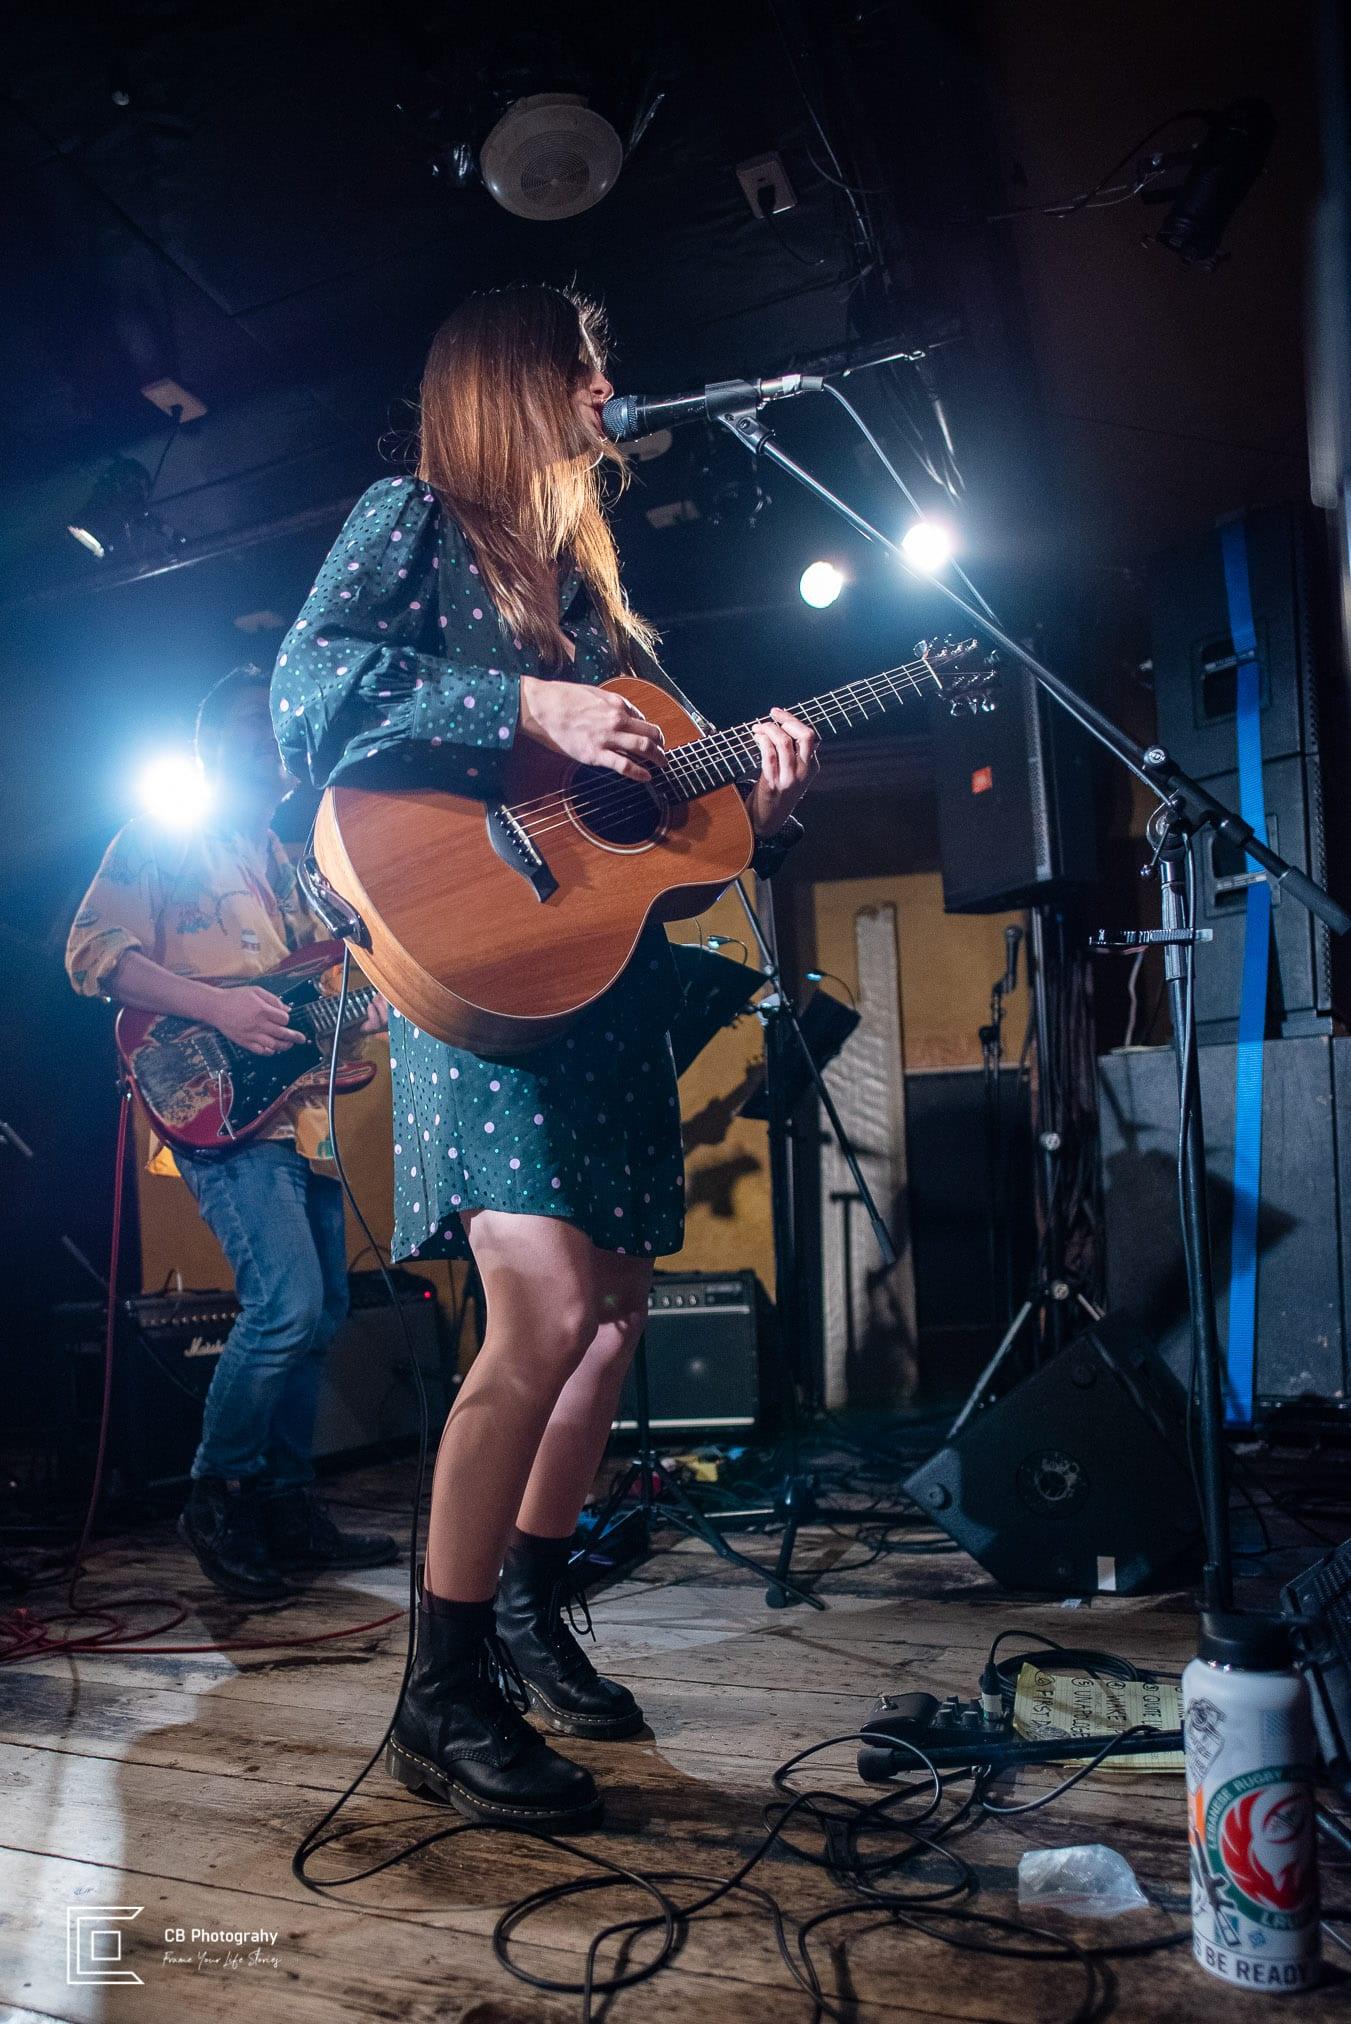 Catherine Forte during her music debut show in Tokyo